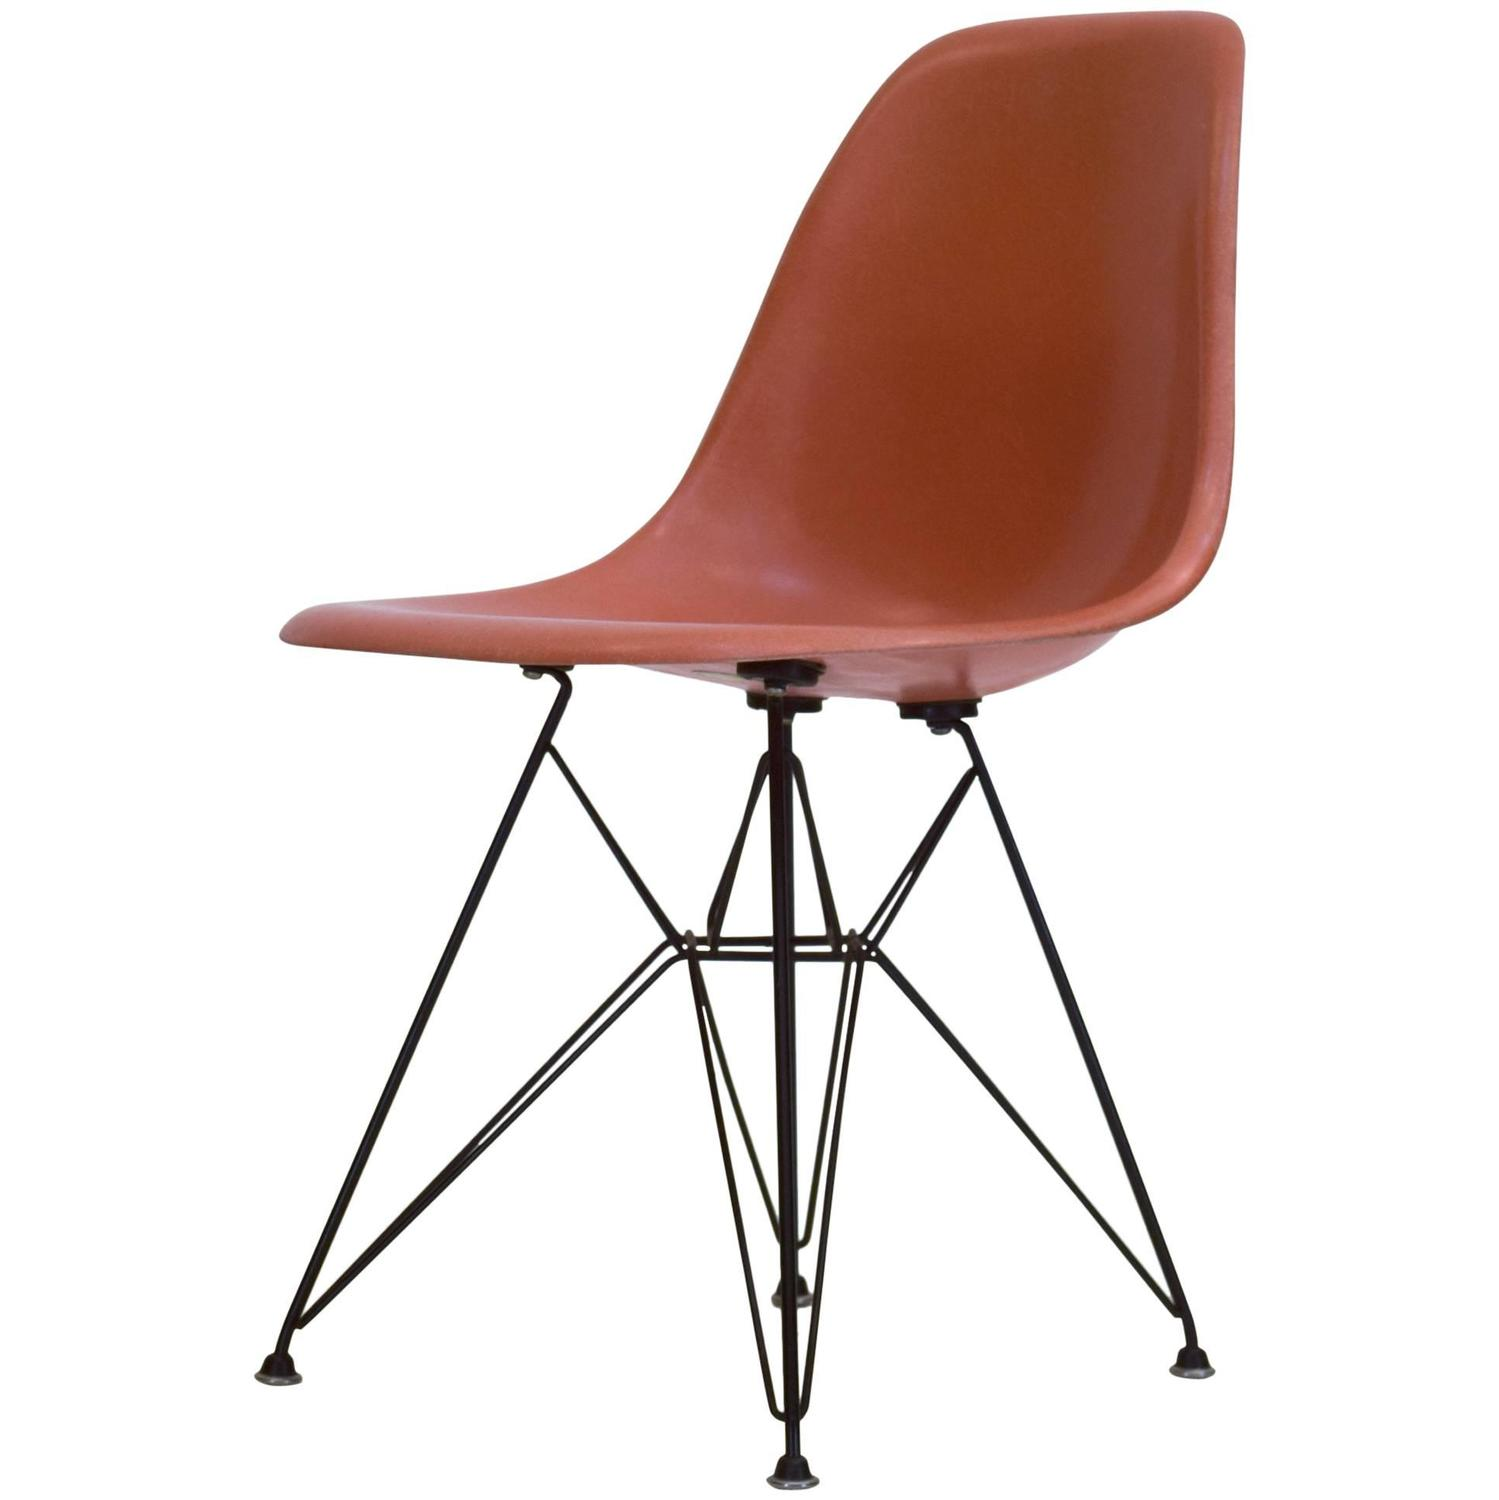 Beau Eames Shell Chair On Original Eiffel Base, 1950s For Sale At 1stdibs